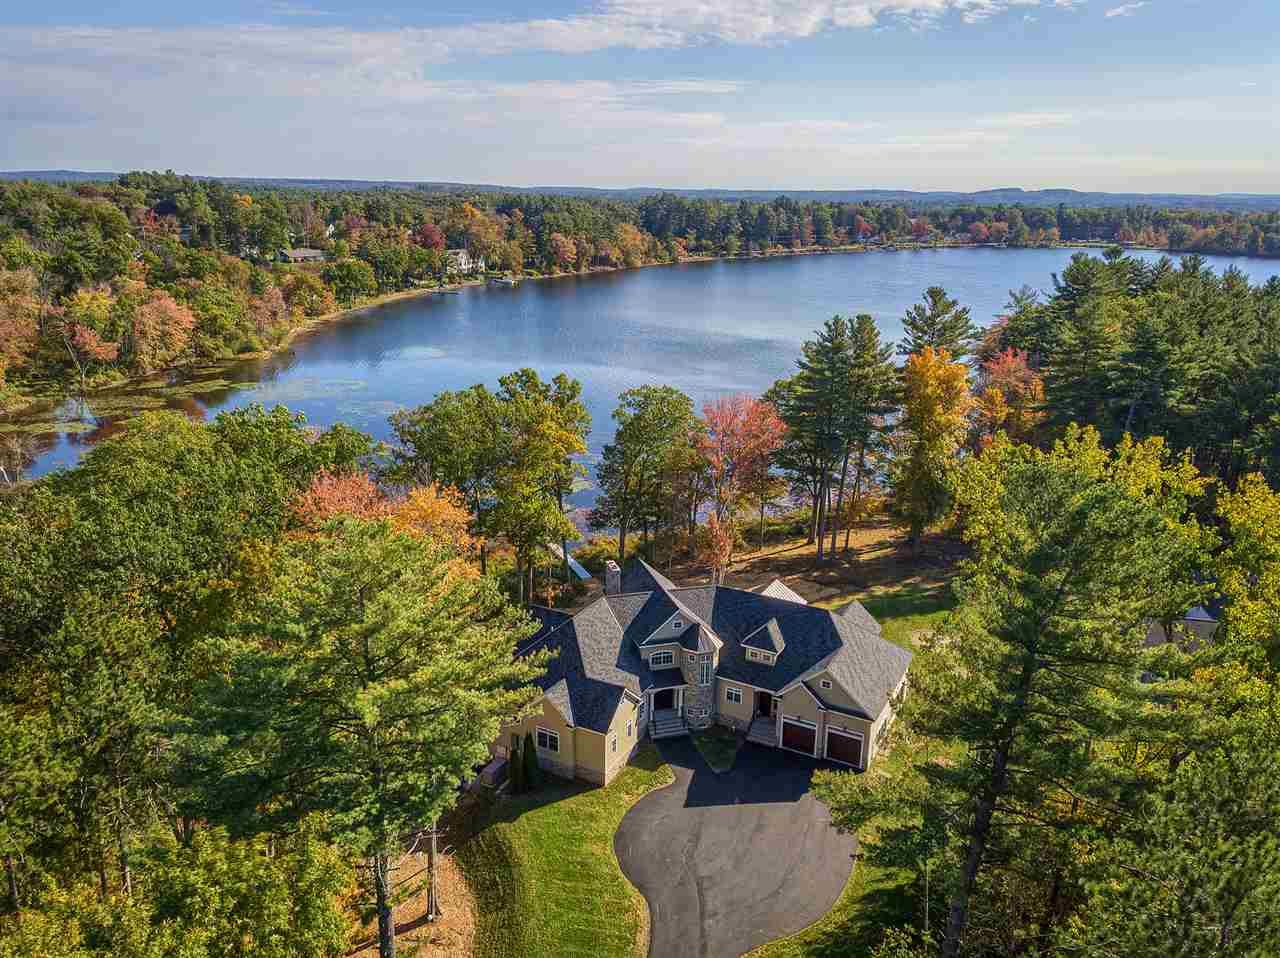 43A Woodvue Road, Windham, NH 03087 - #: 4814374